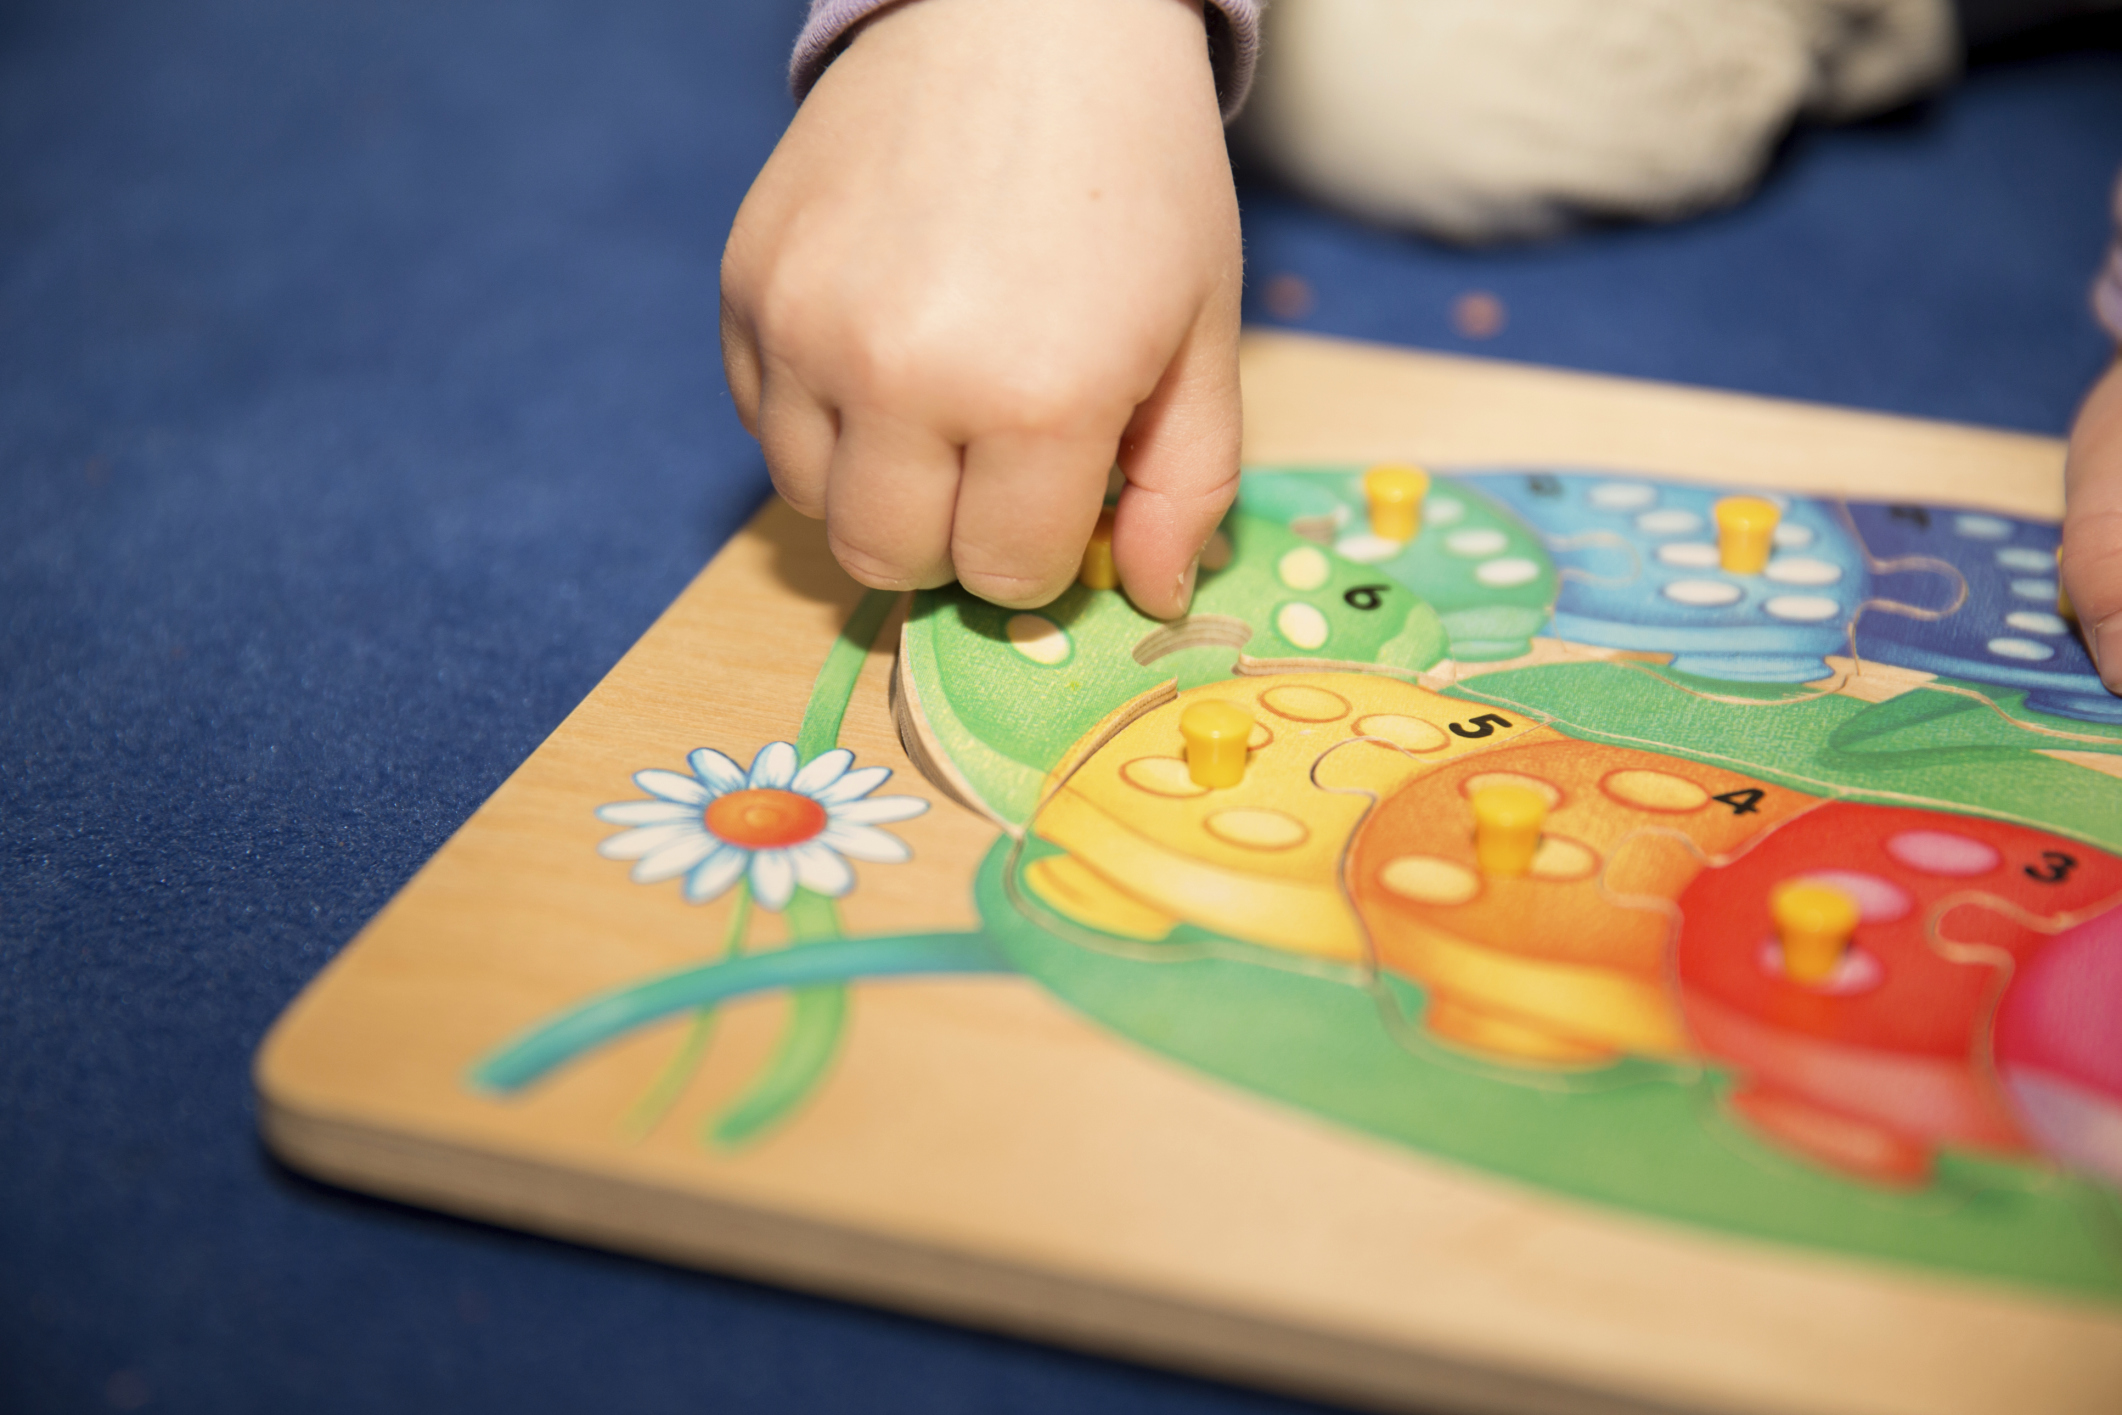 Activities for Low Functioning People With Autism